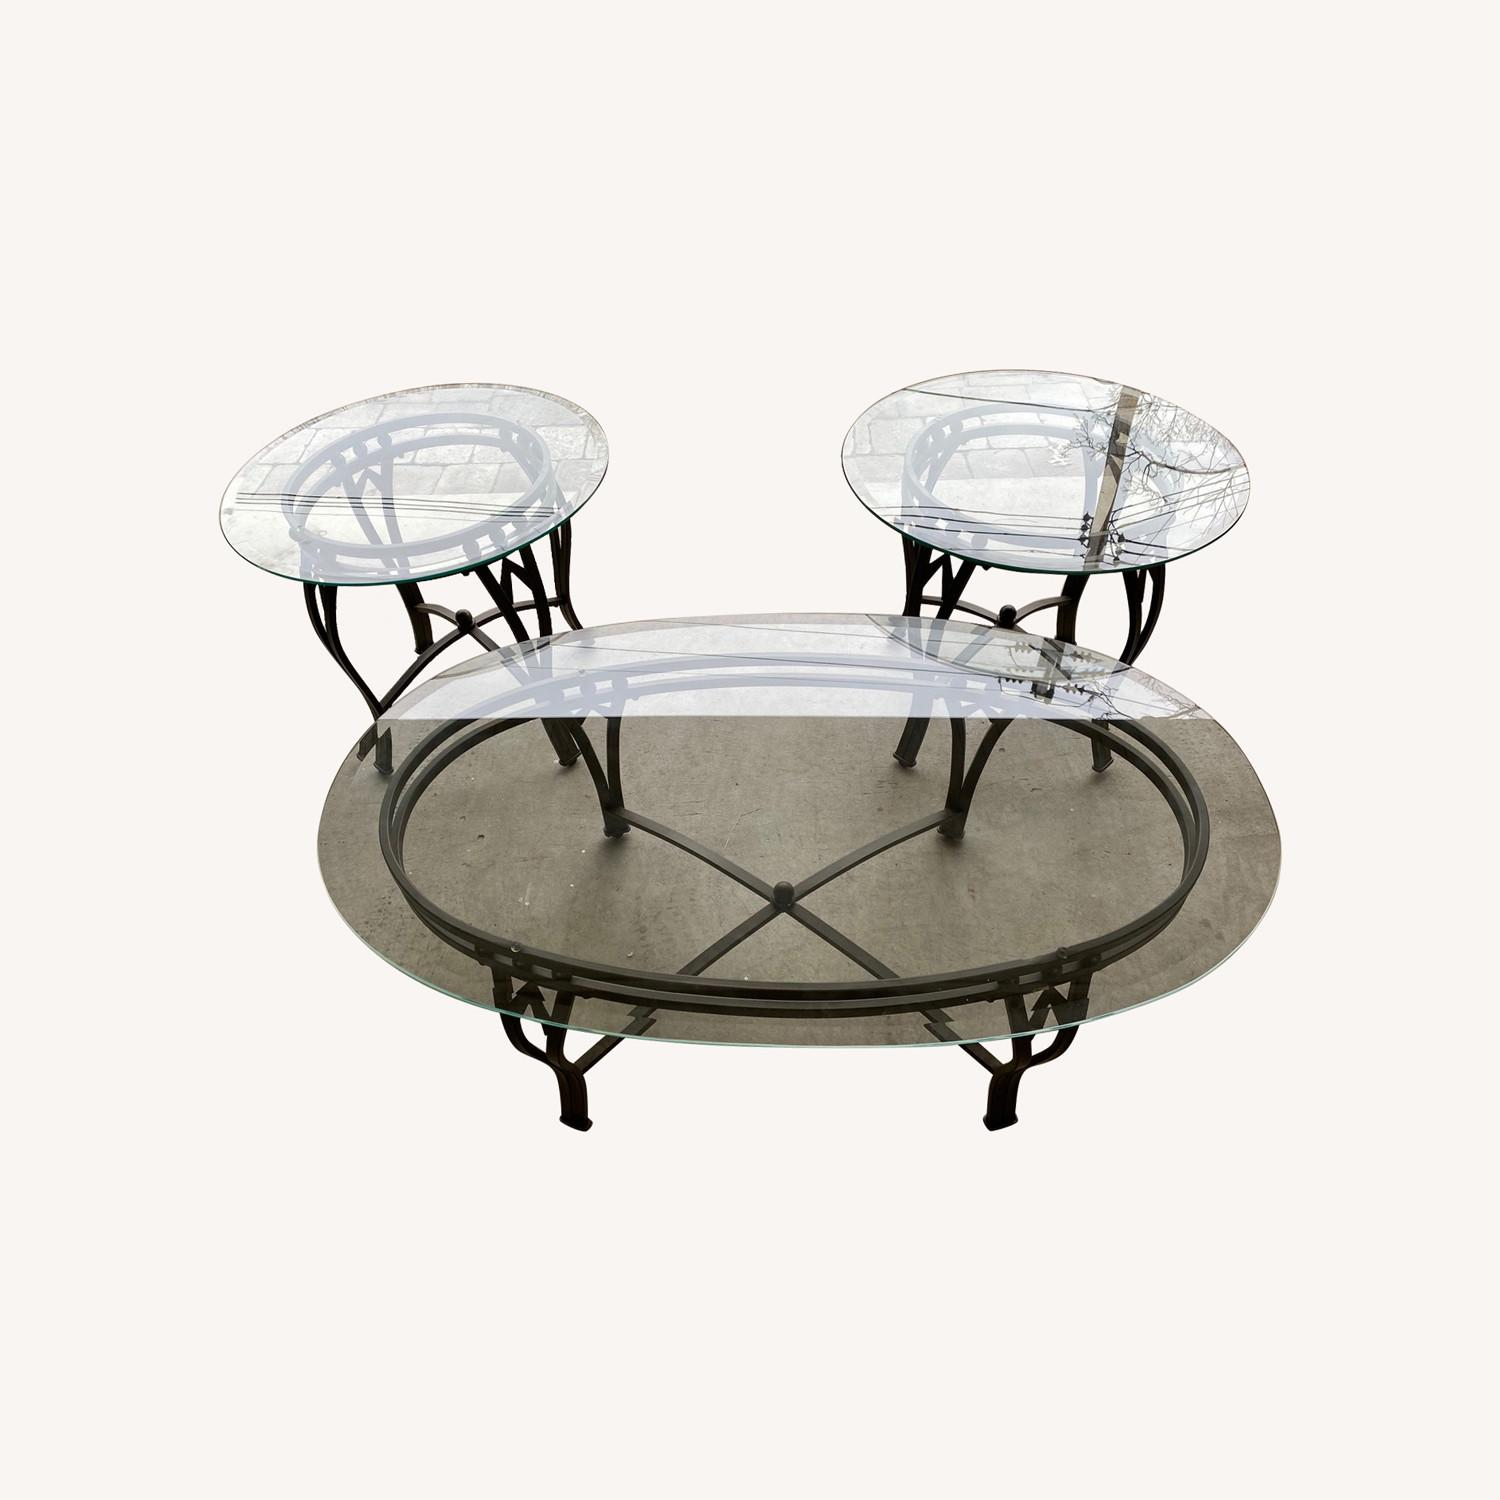 Raymour & Flanigan Glass Coffee & End Table - image-0